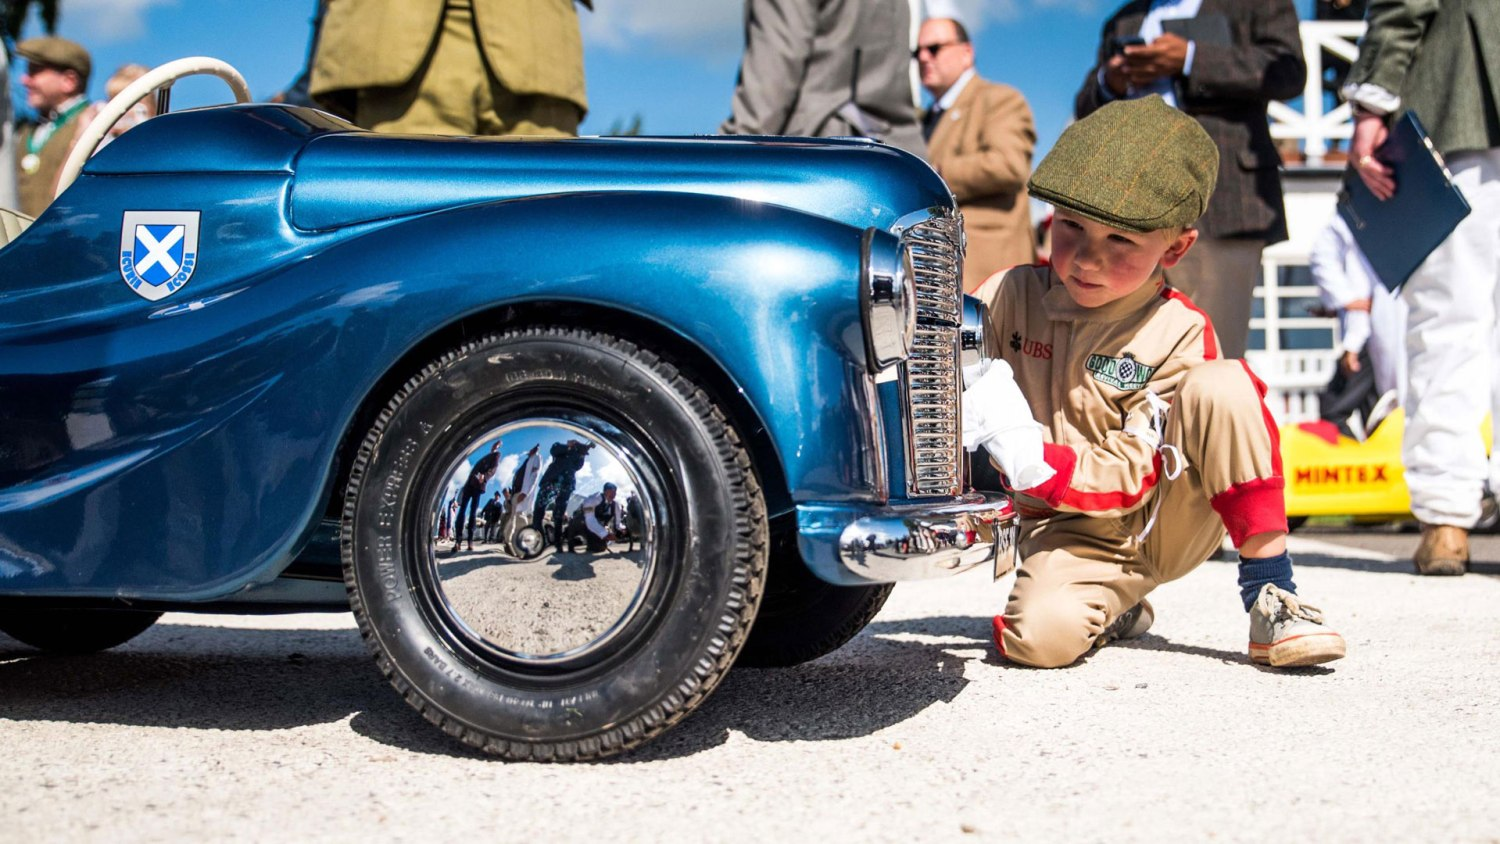 Goodwood Revival – 13-15 September